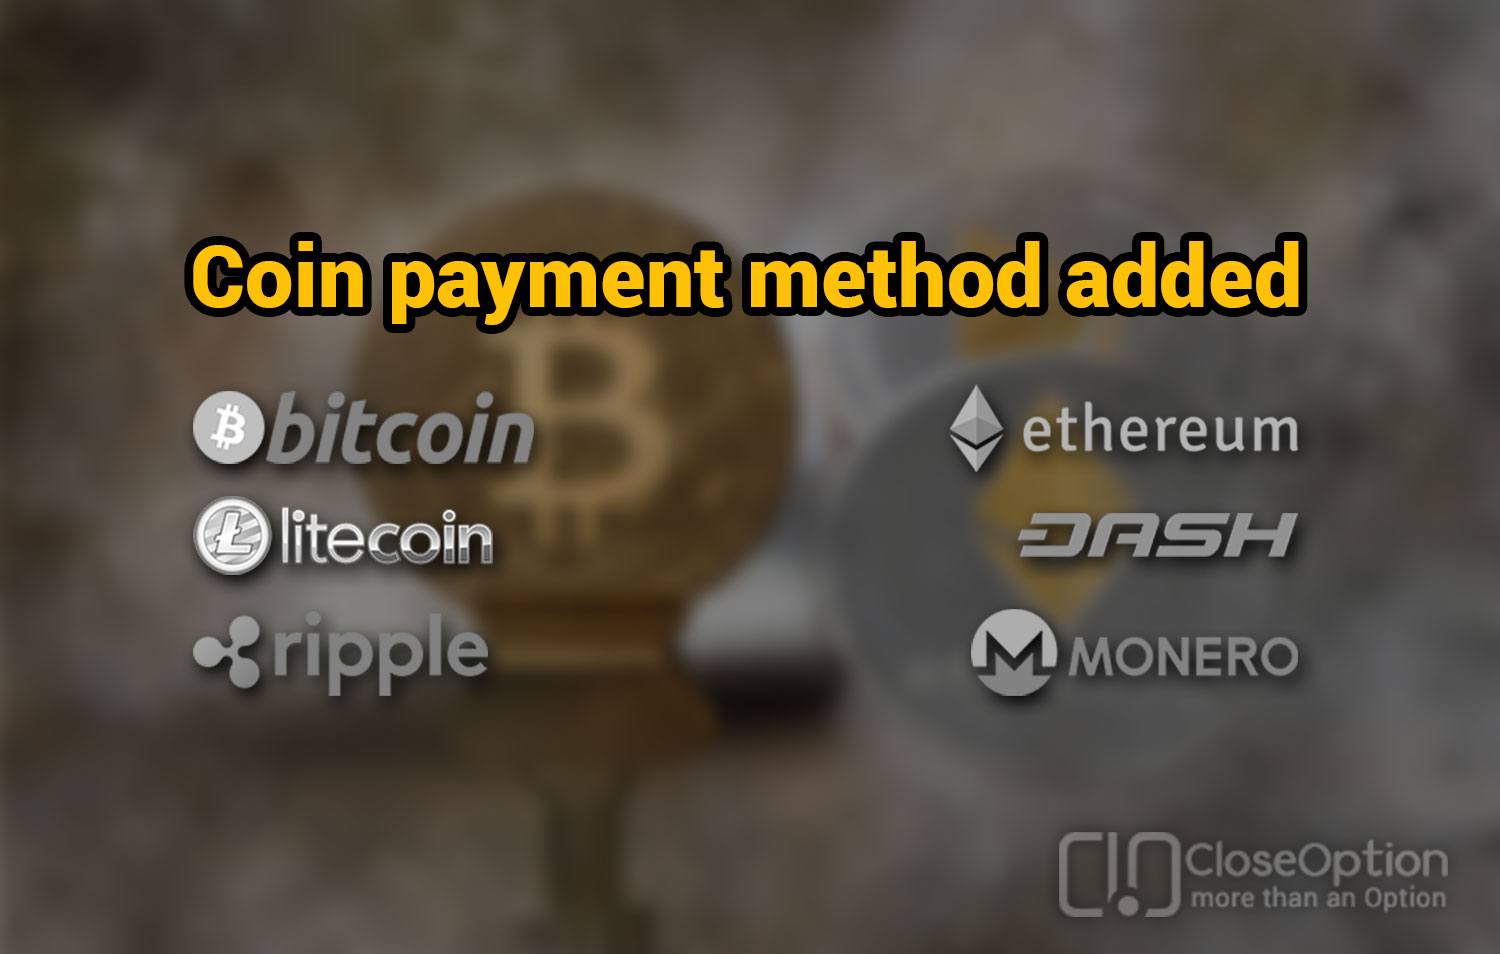 Coin payment method added to CloseOption